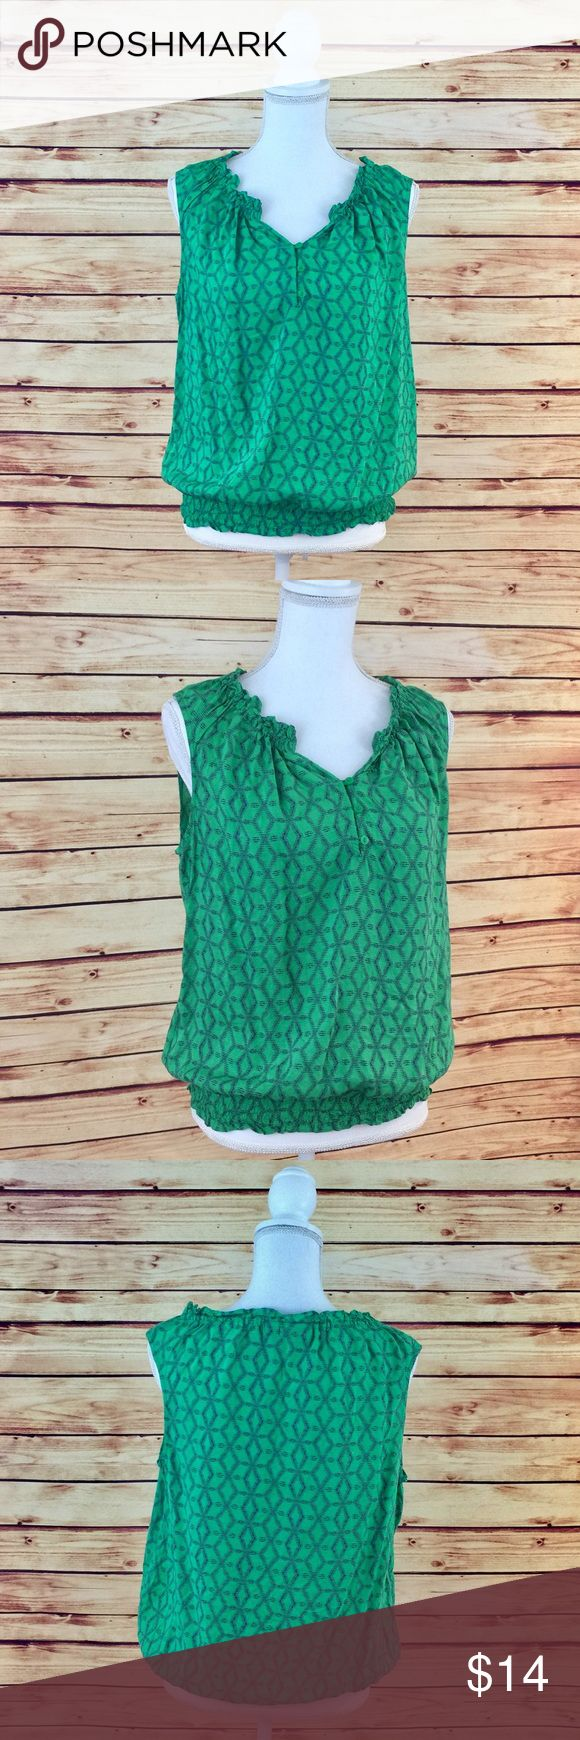 """Make Bundle Offer • a.n.a Green Sleeveless Top ▫️Brand: a.n.a ▫️Size: L ▫️Material: Rayon ▫️Flaws: NONE  ▫️Description:  •Smocked split v-neck  •3 Button Front •Sleeveless  •Navy diamond pattern  •Smocked hem ▫️Measurements Laying Flat: •Chest: 20"""" •Length: 24"""" •Shipping Weight: 4oz  ▪️NO Trade/Hold ▪️Next Day Shipping ▪️Smoke Free/Kitty Friendly Home a.n.a Tops Tank Tops"""